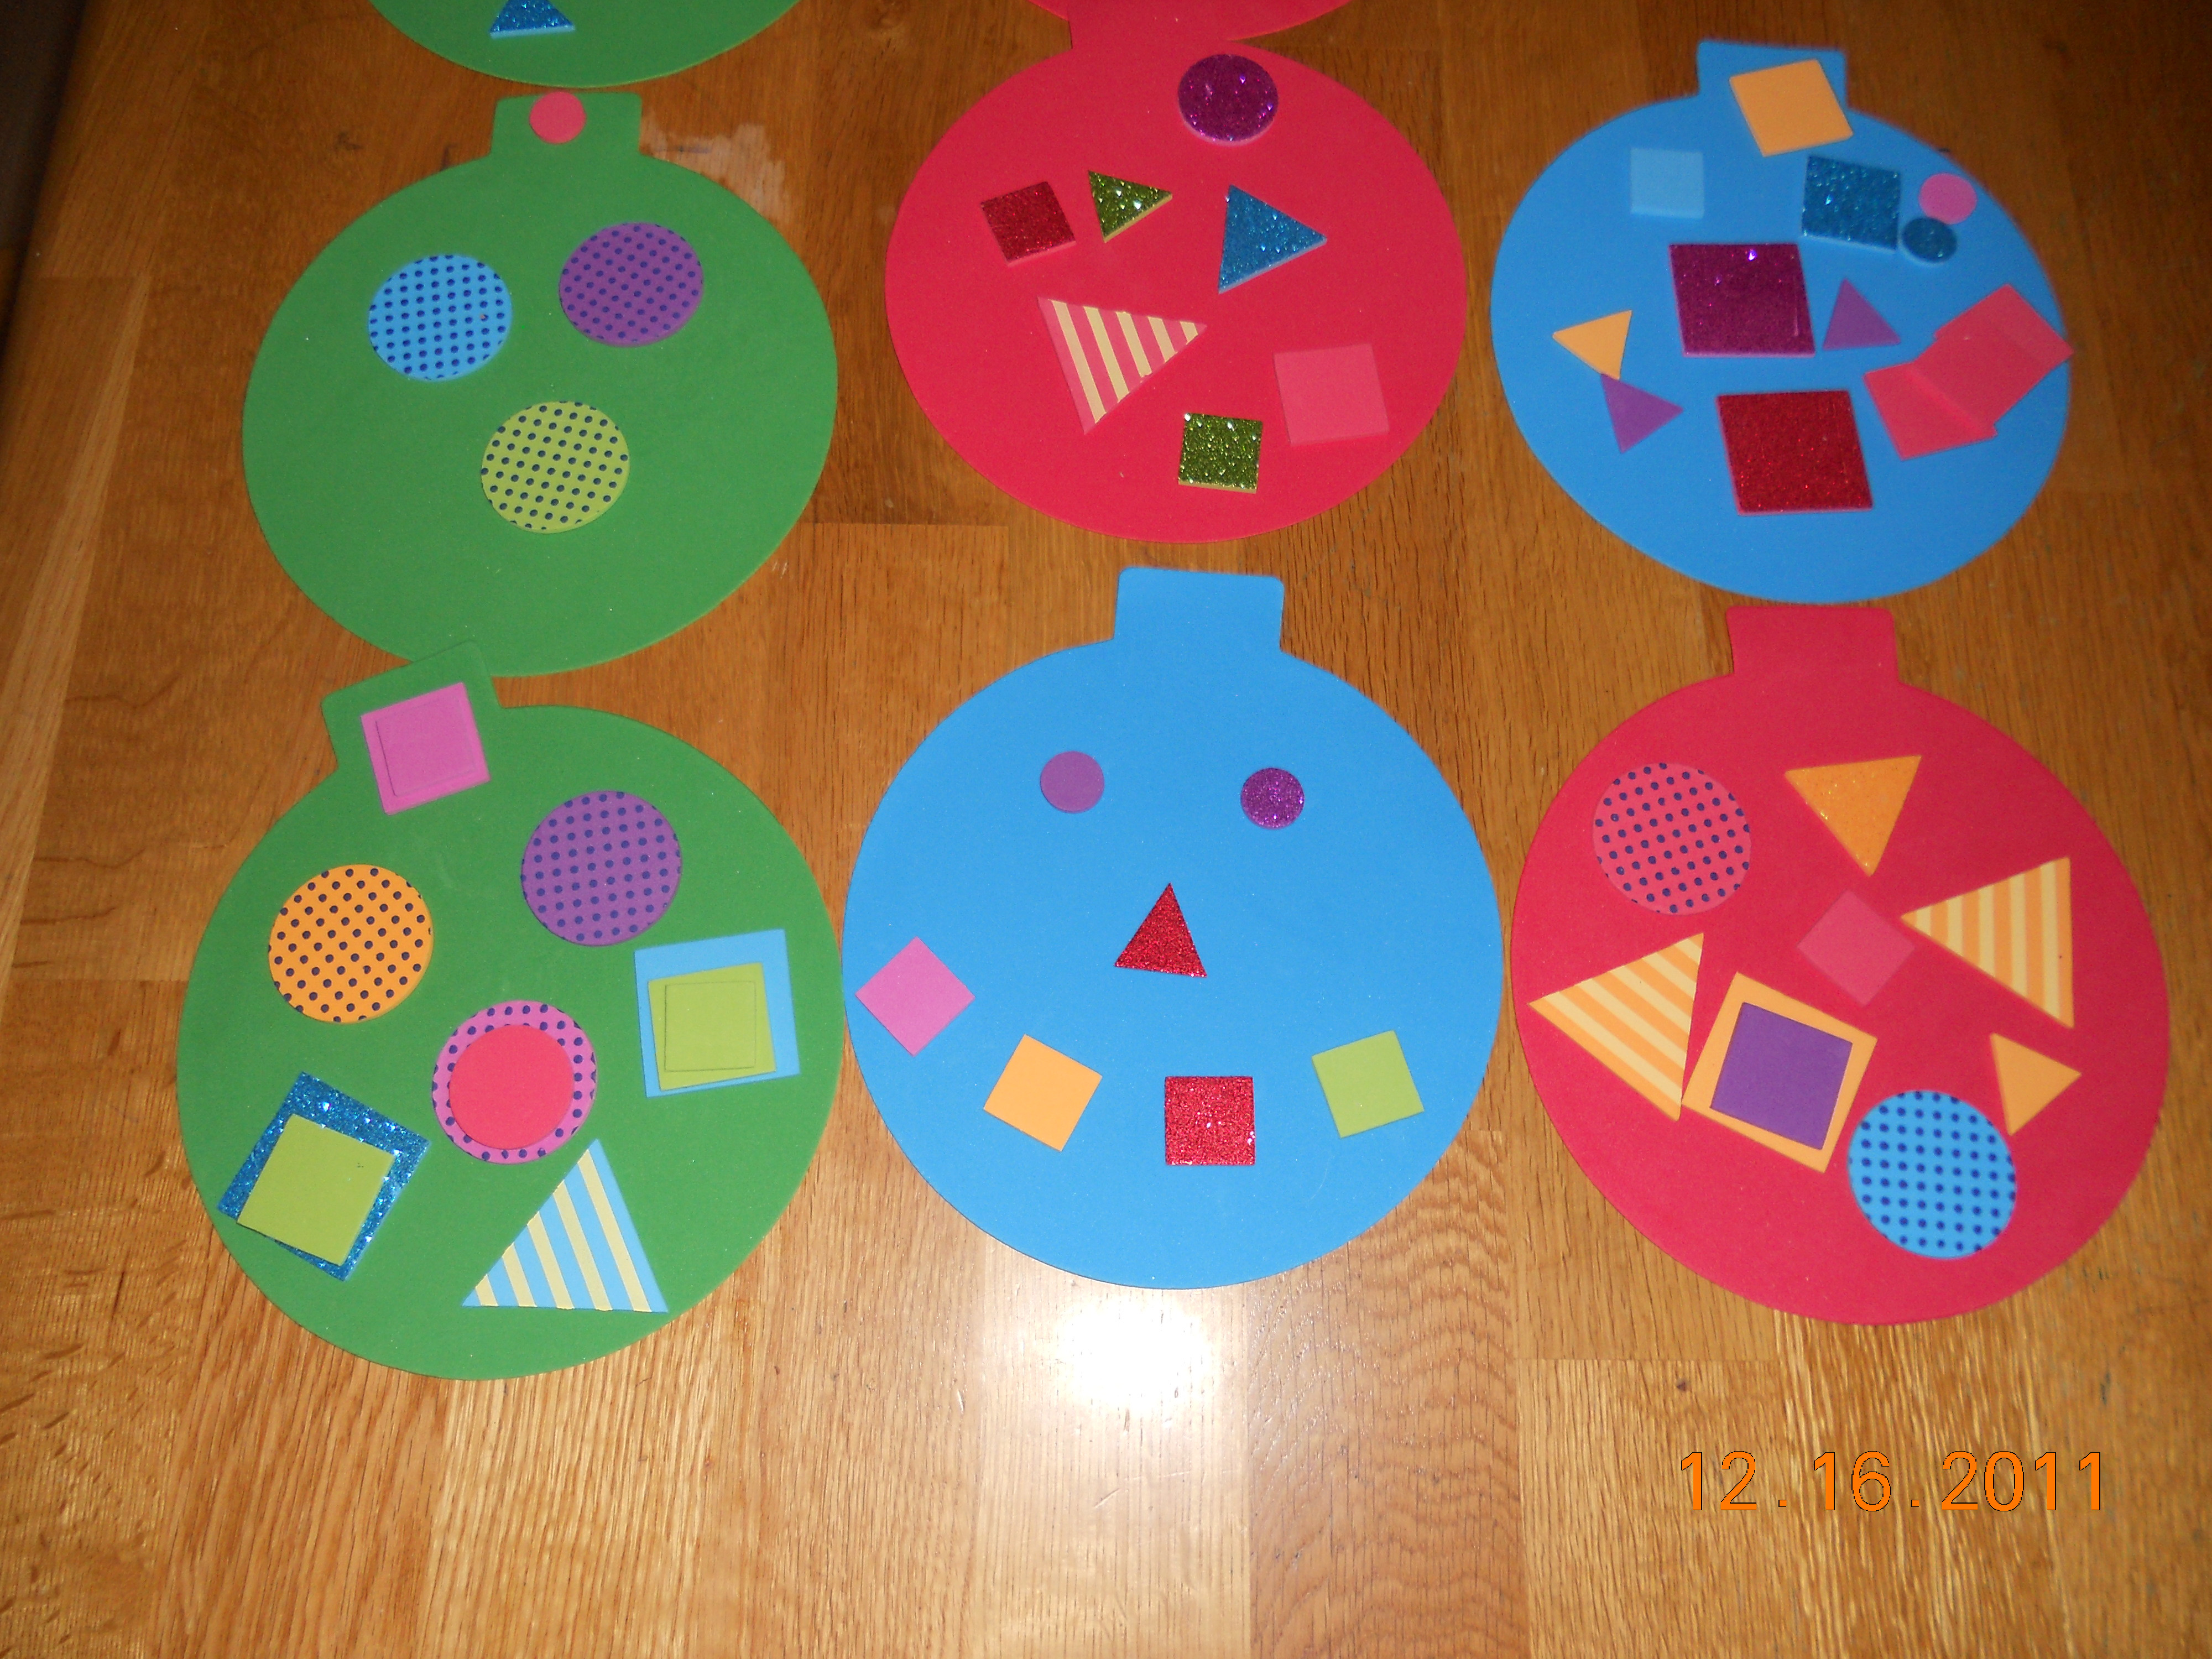 Best ideas about Christmas Projects For Preschoolers . Save or Pin Preschool Crafts for Kids Easy Christmas Ornament Craft Now.